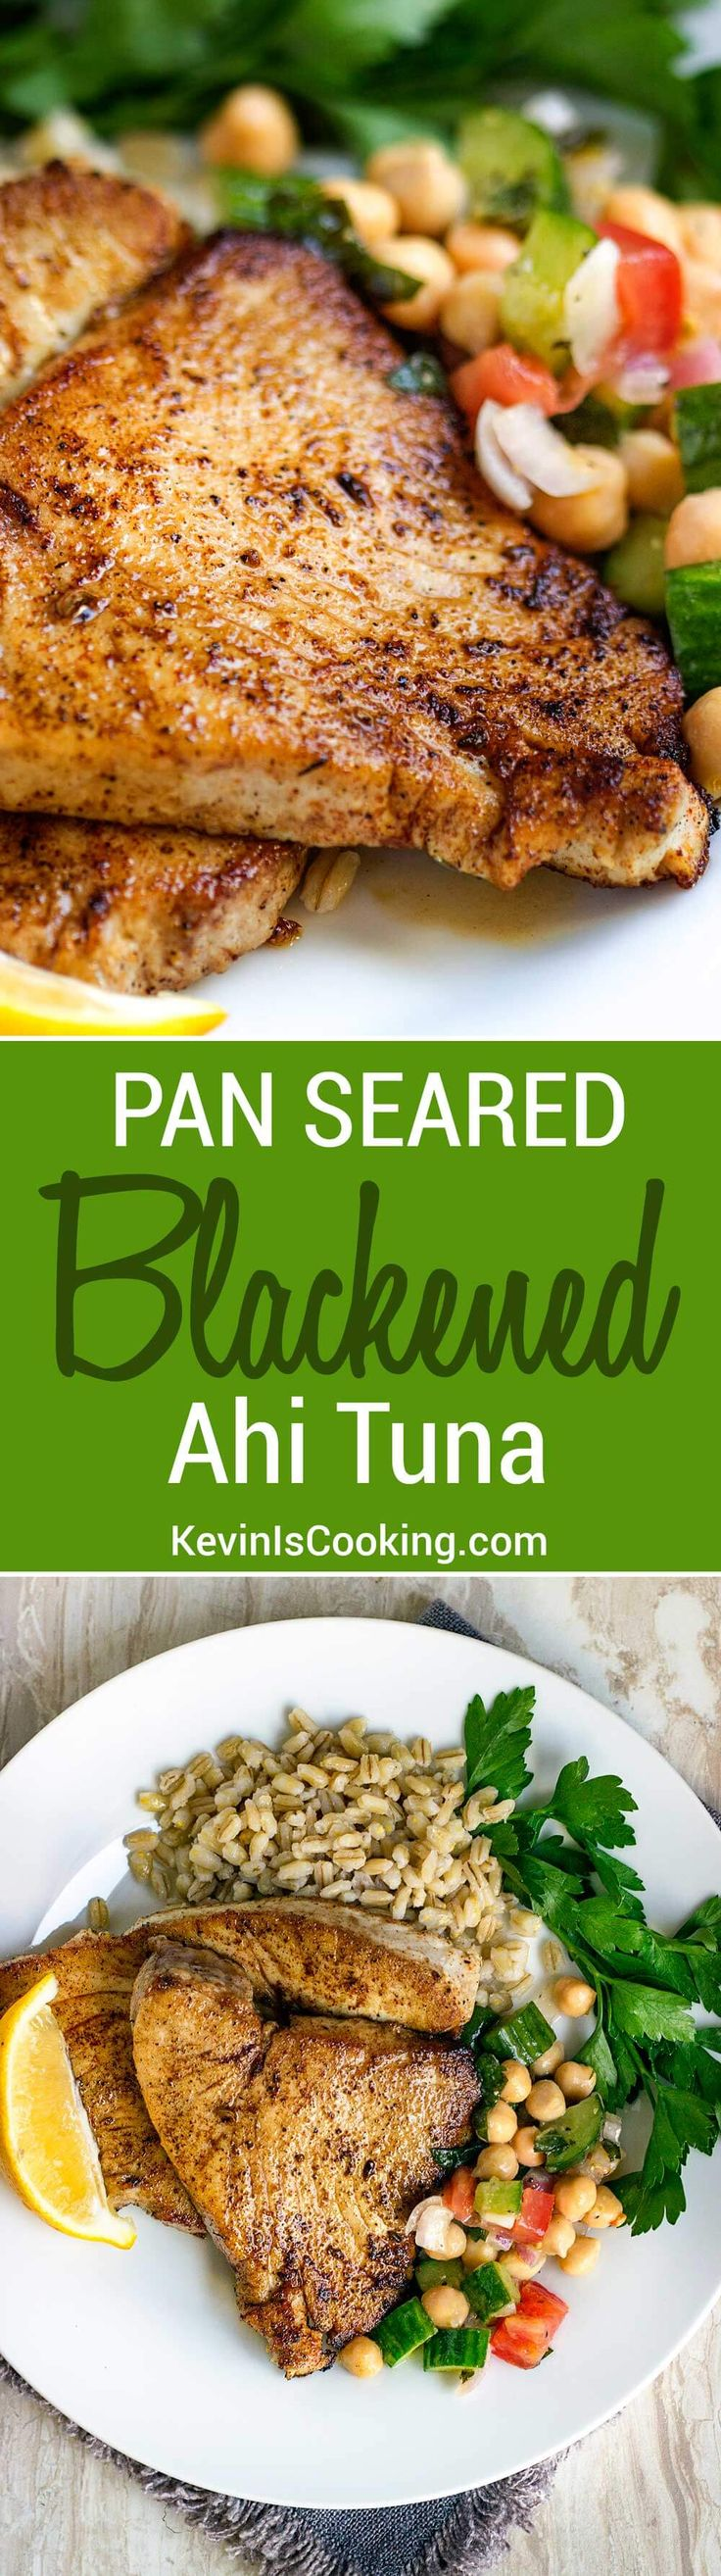 This Pan Seared Blackened Ahi Tuna is a family go to for a quick and healthy dinner. Just the right amount of spice and heat, too!